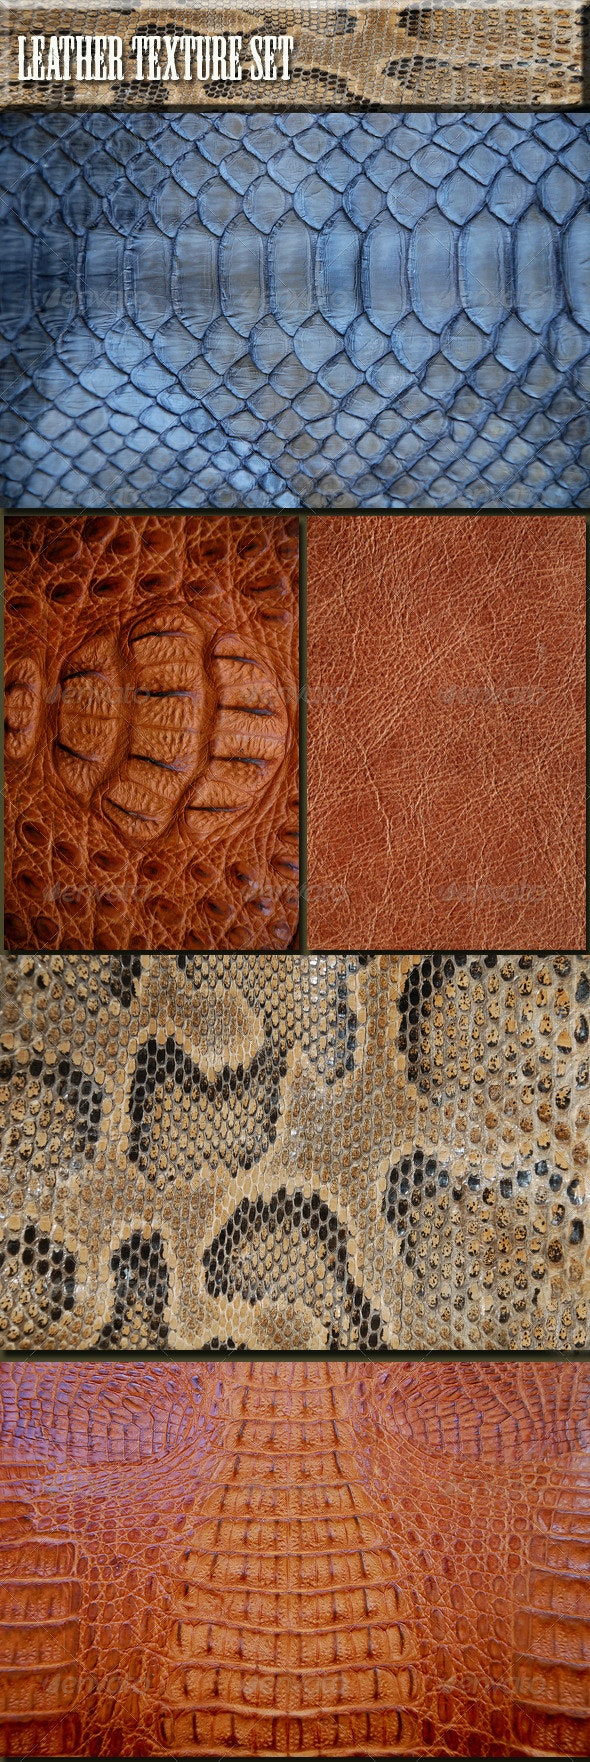 Texture Leather Set - Nature Textures